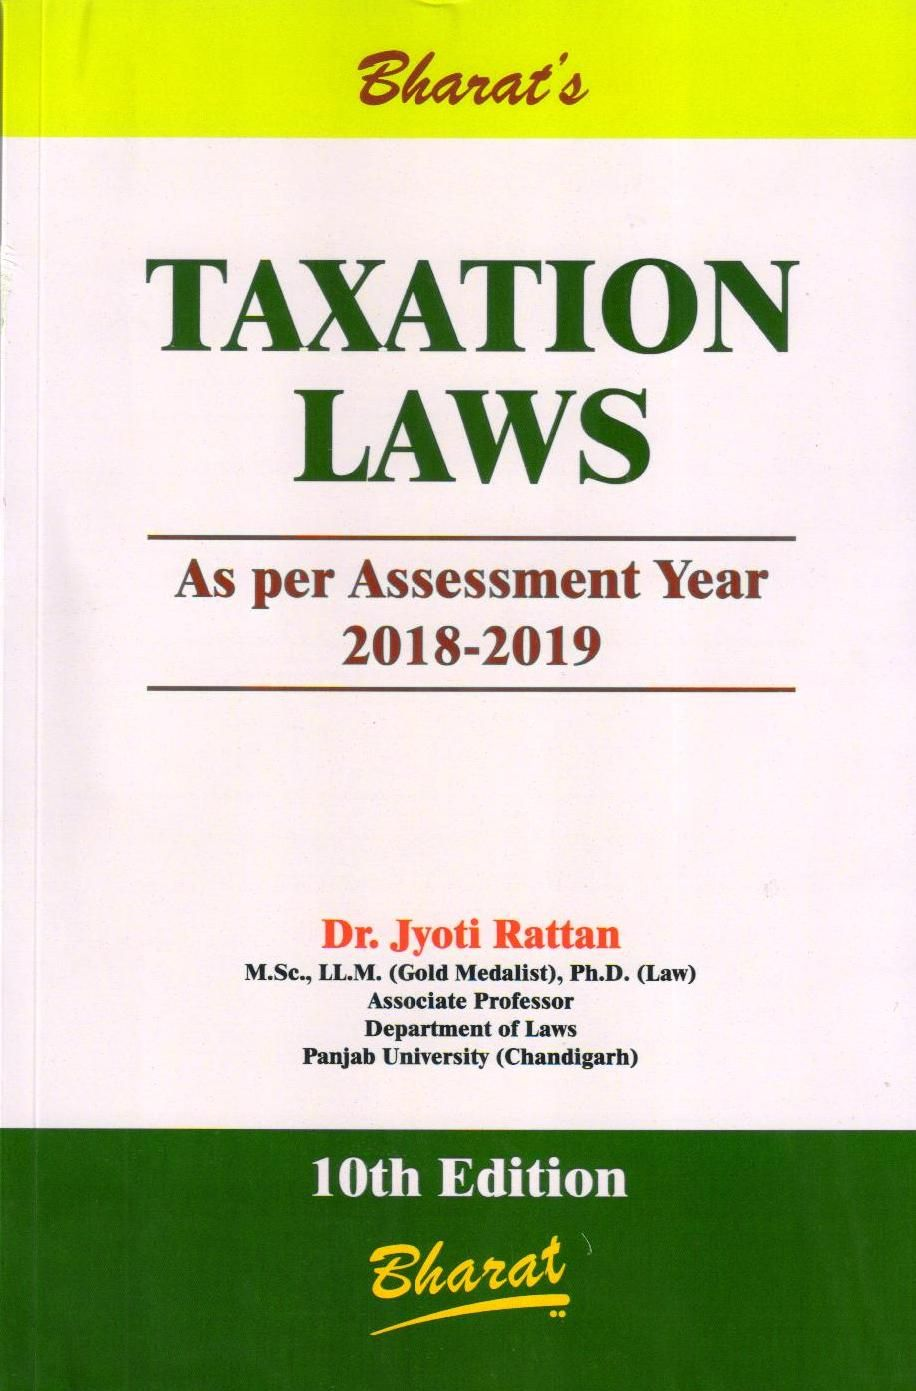 Rattan Jyoti Taxation Laws 10th Edition By Dr Jyoti Rattan Nowbuyonline Www